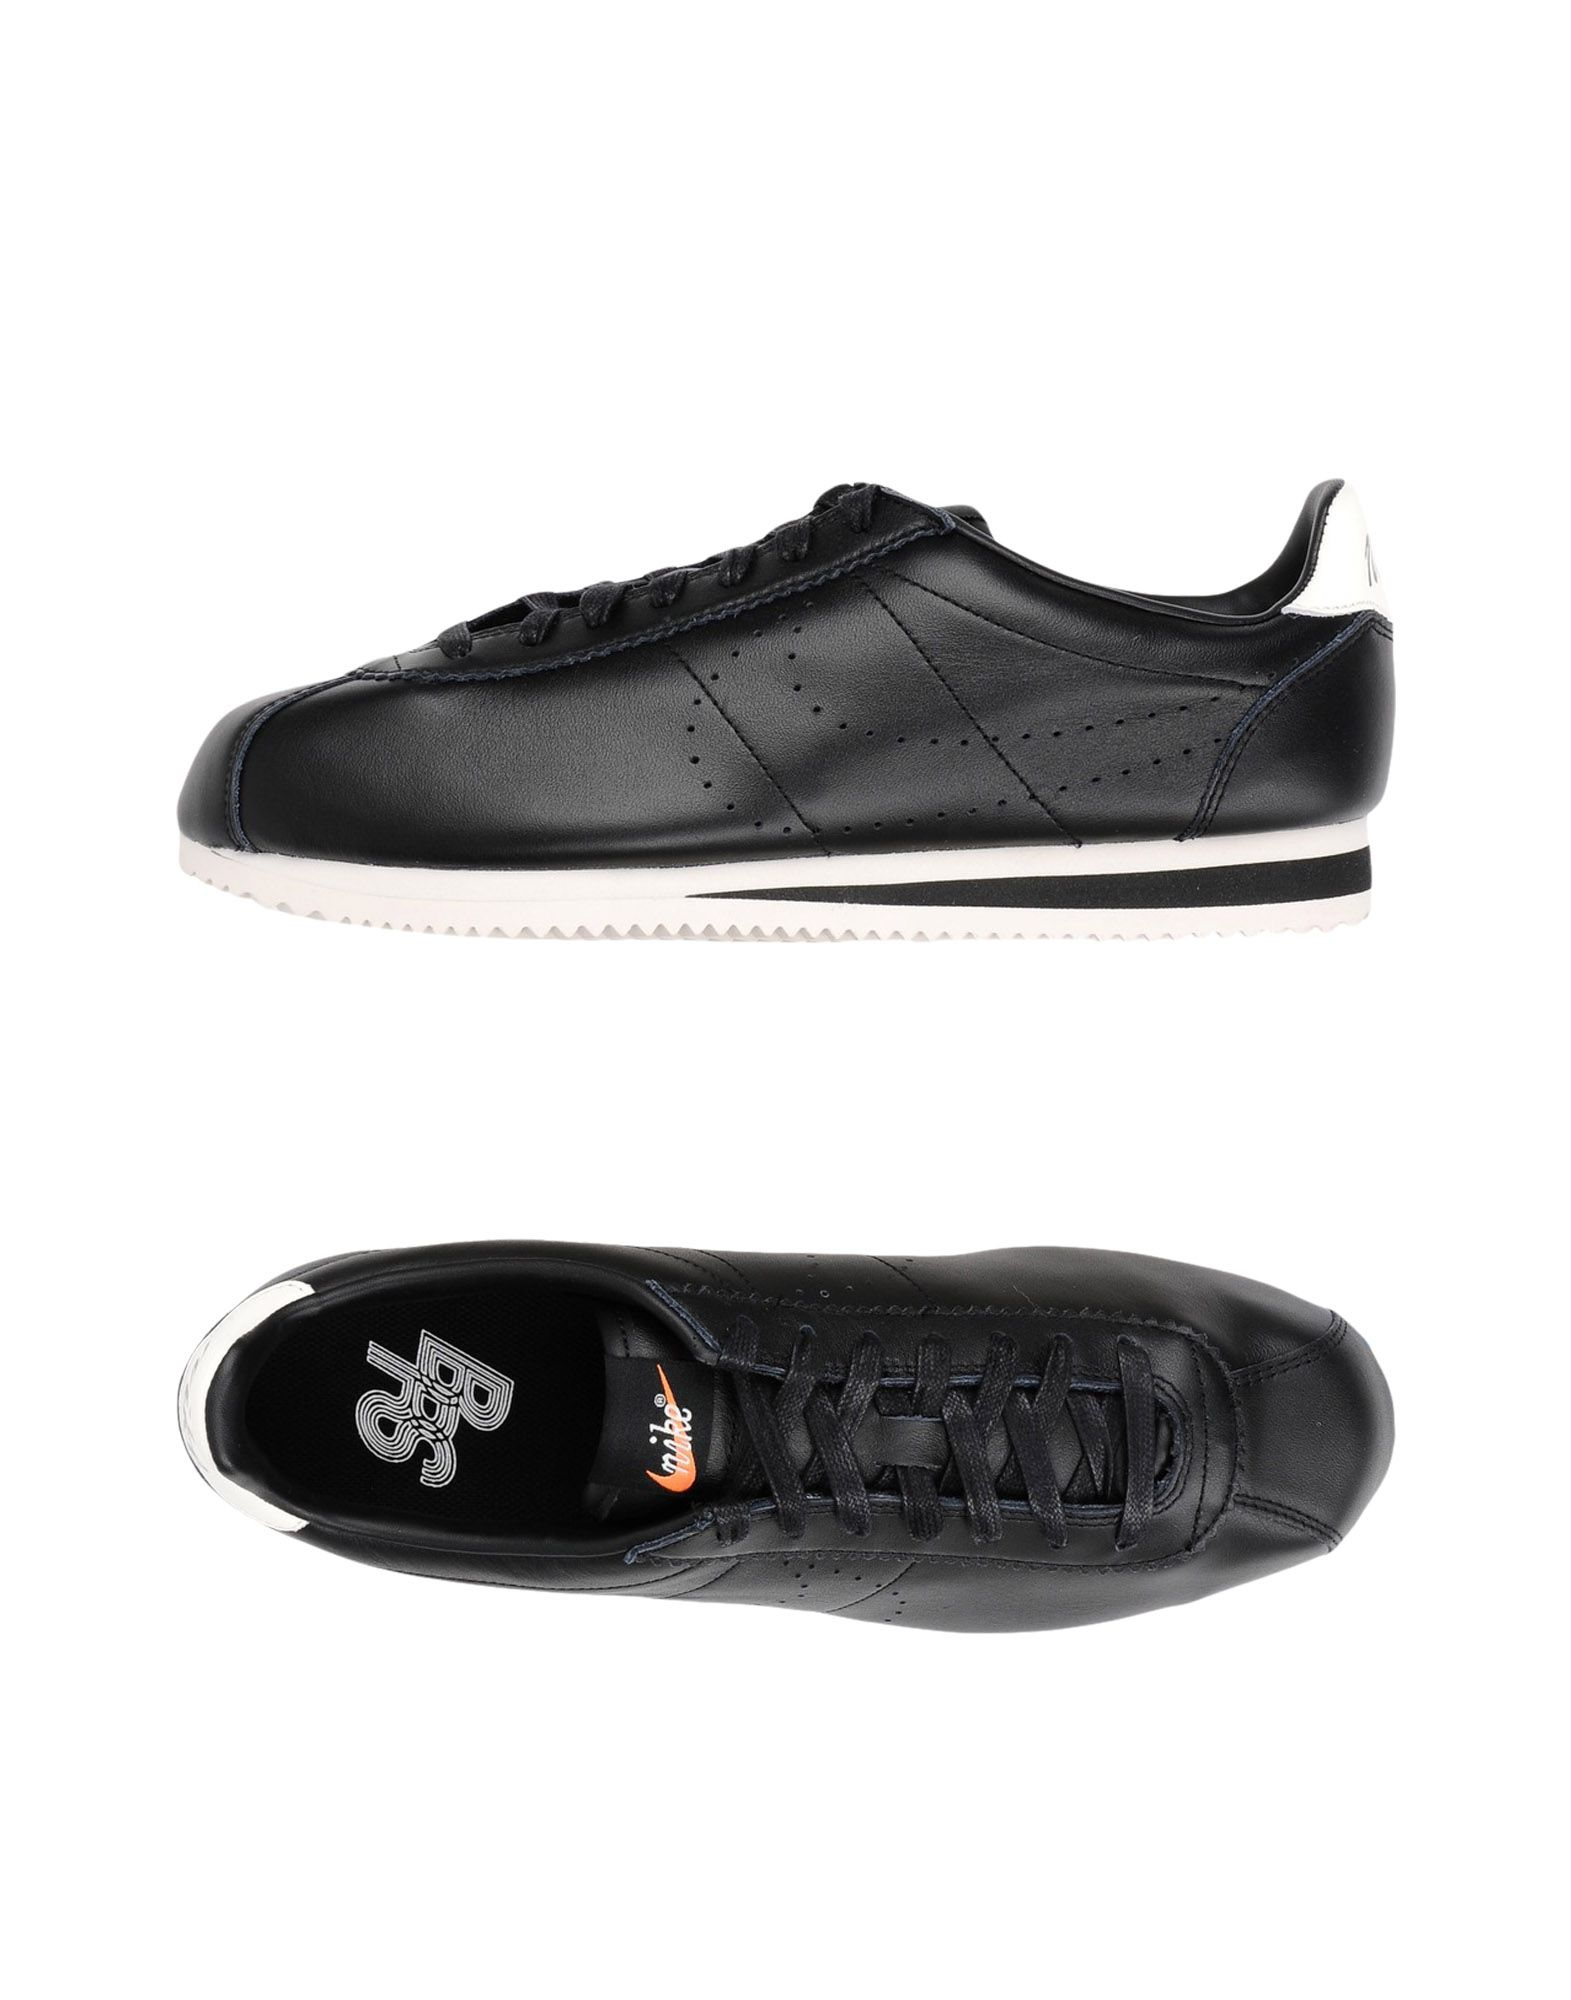 Sneakers Nike Classic Cortez Leather Premium - Homme - Sneakers Nike sur